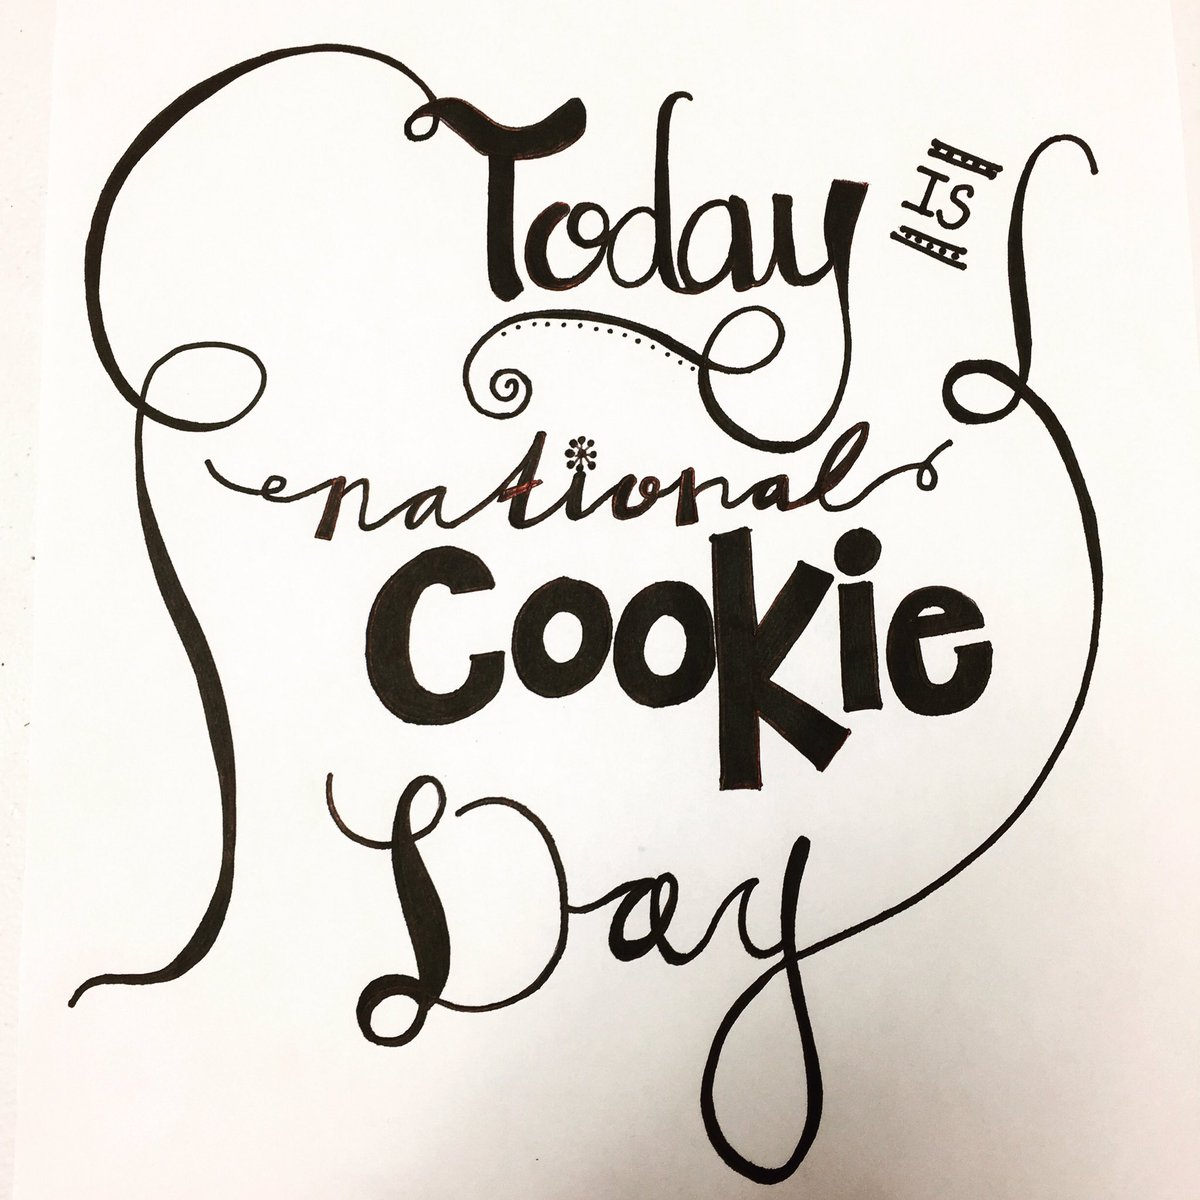 🍪✨🍪RT, like and follow for a chance to win a FREE HALF DOZEN!!! #nationalcookieday ✨🍪✨